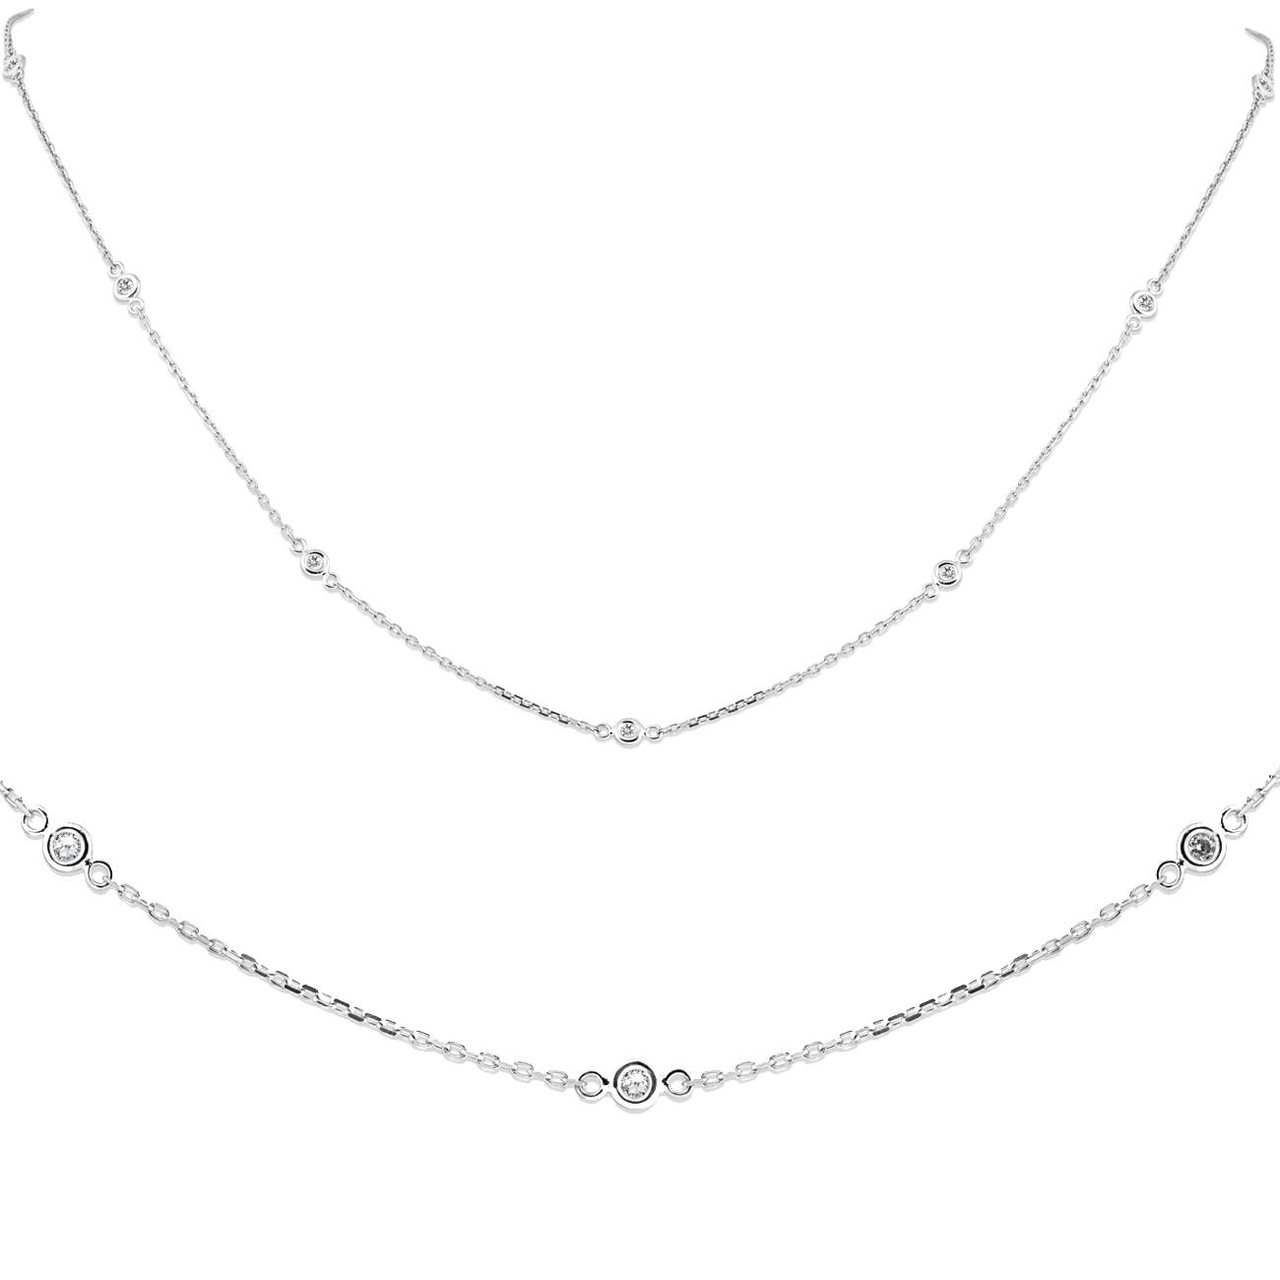 3 4 5 Bezel Diamond Necklace 14K or 18K Solid Gold Diamond By The Yard Station Necklace Diamond Wedding Solitaire Necklace for Her 1 2